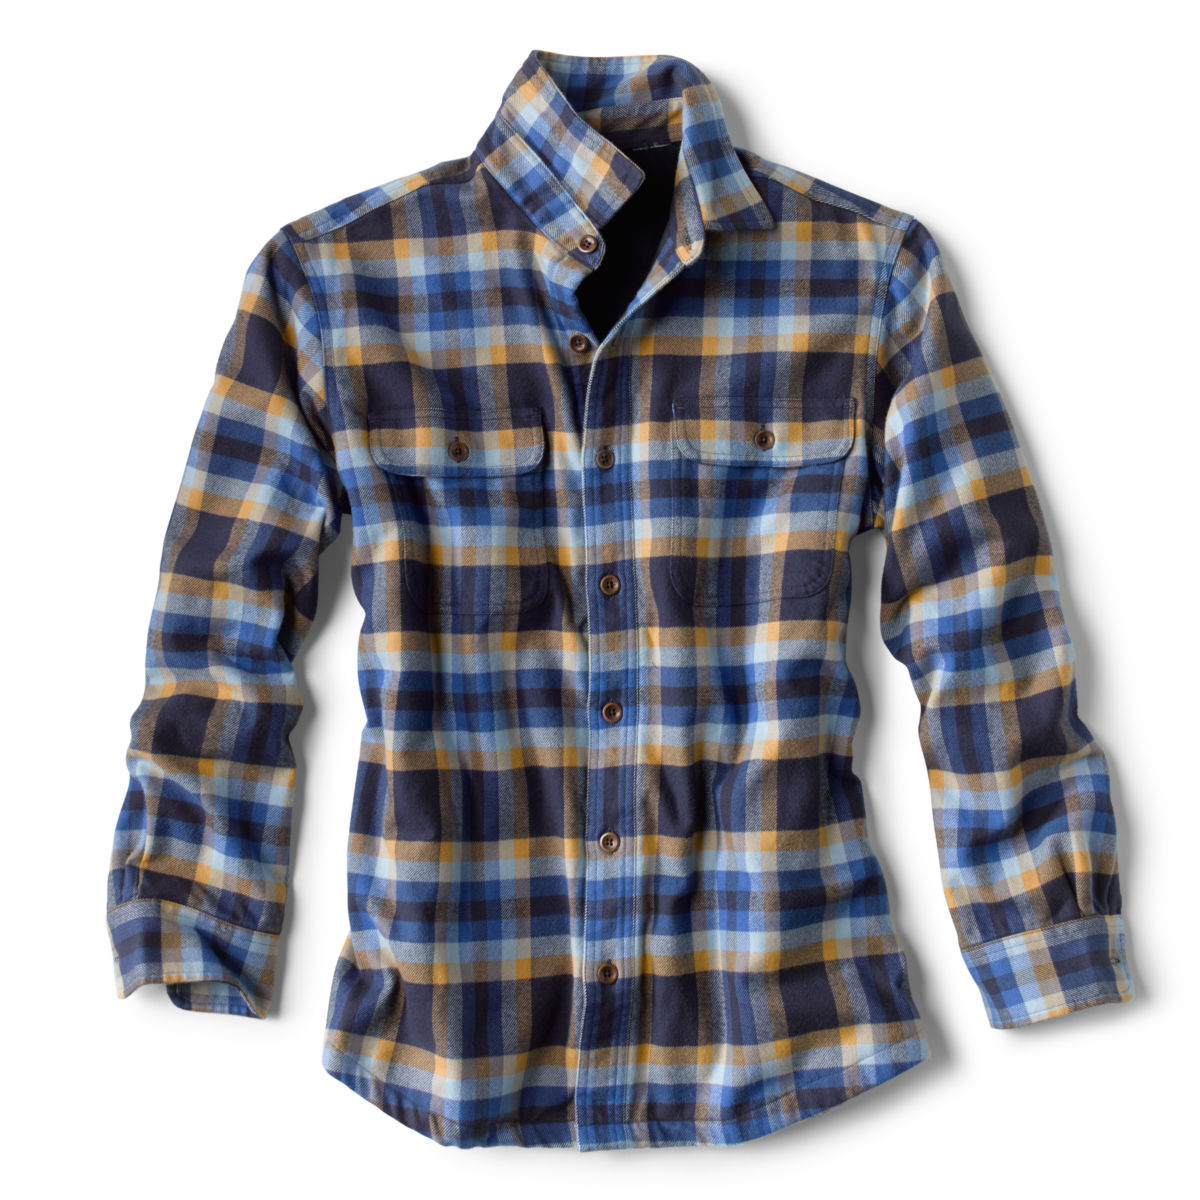 Fleece-Lined Perfect Flannel Long-Sleeved Shirt - BLUE/TANimage number 0